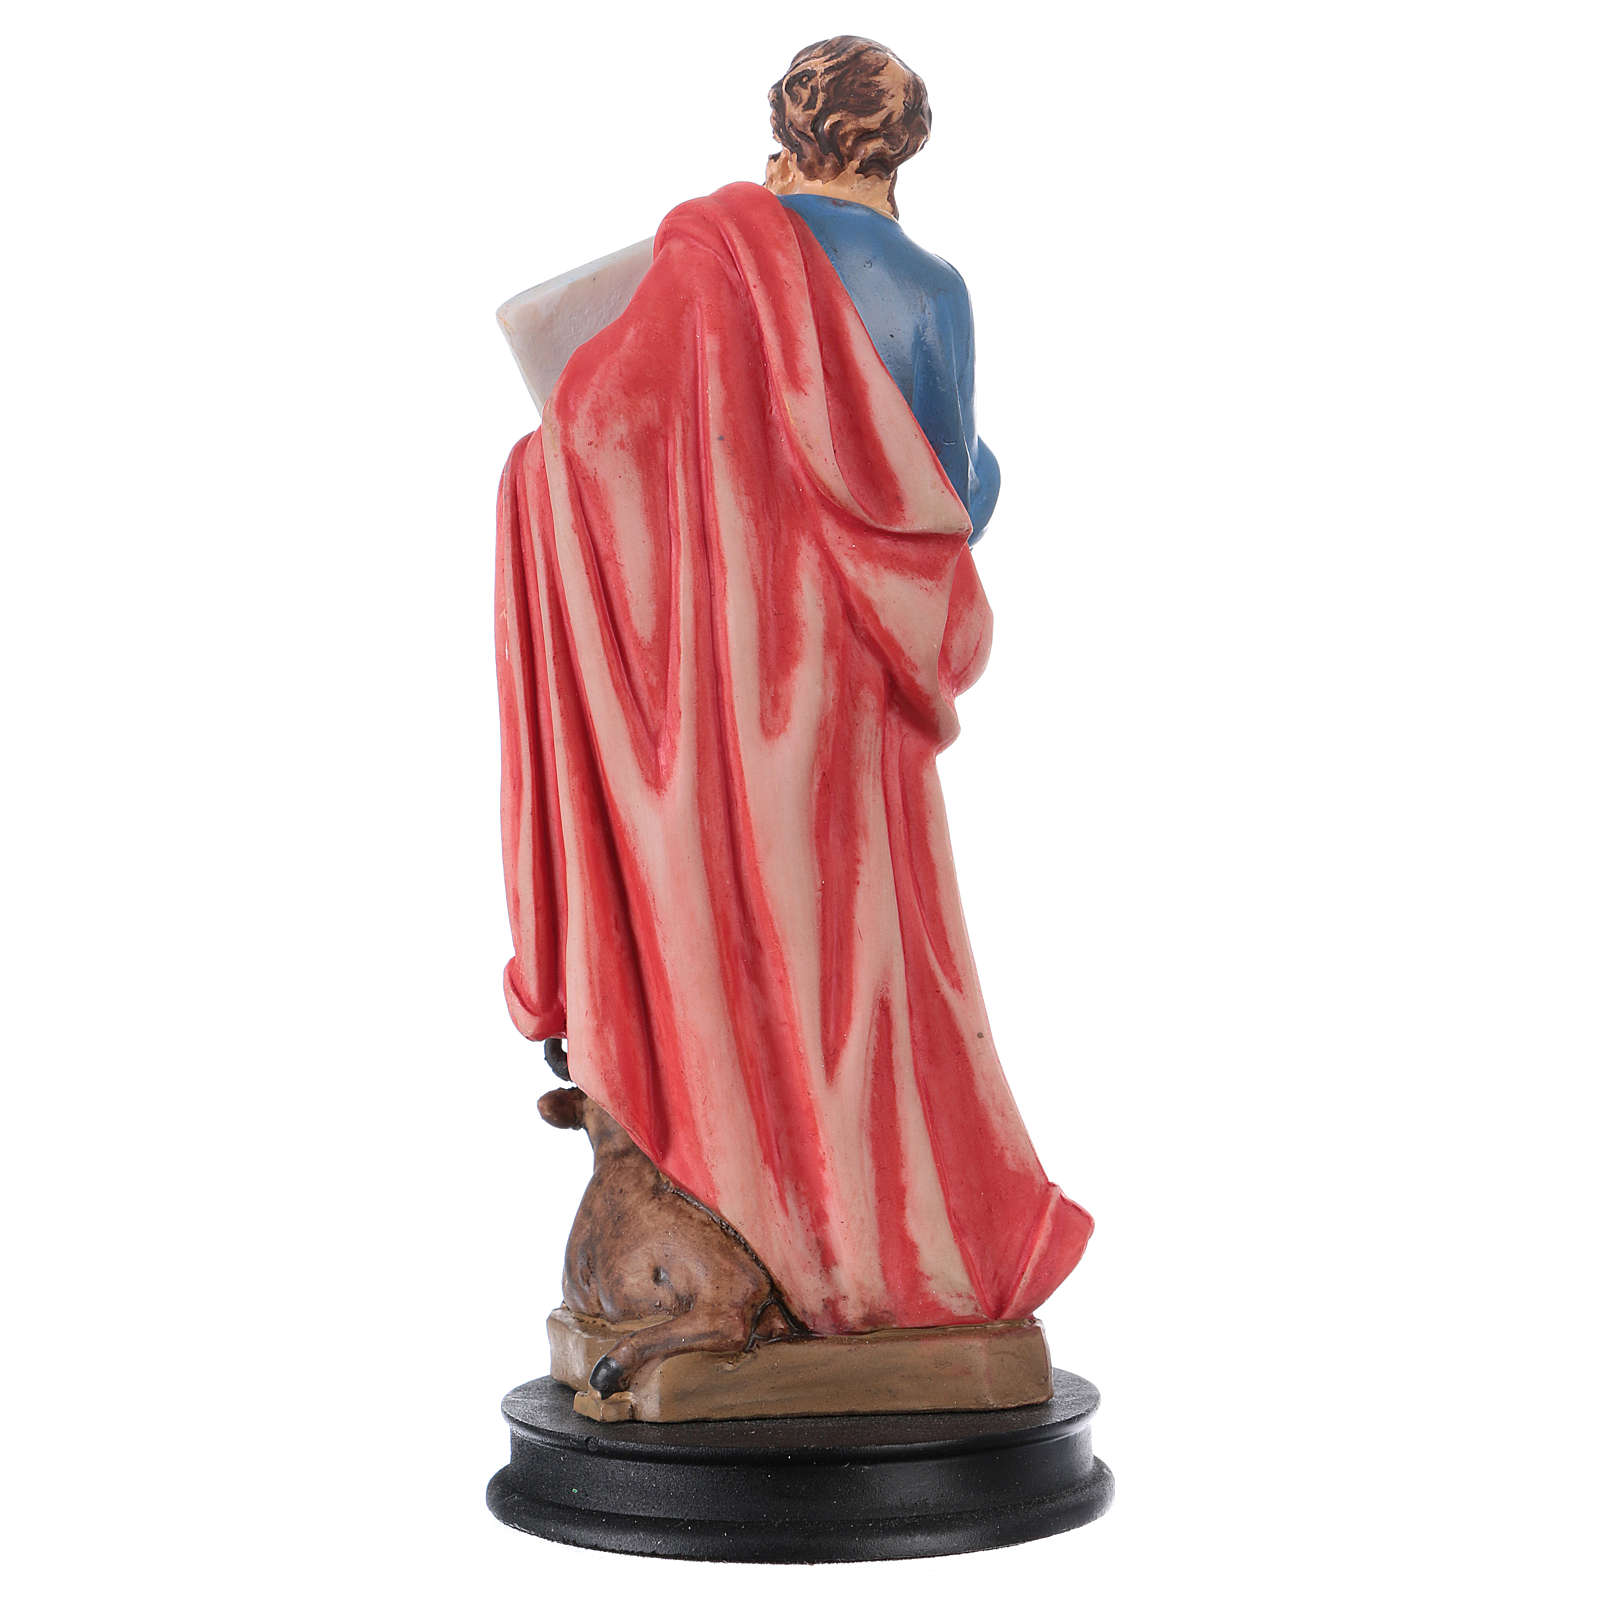 STOCK resin Saint Luke the Evangelist statue 13 cm 4